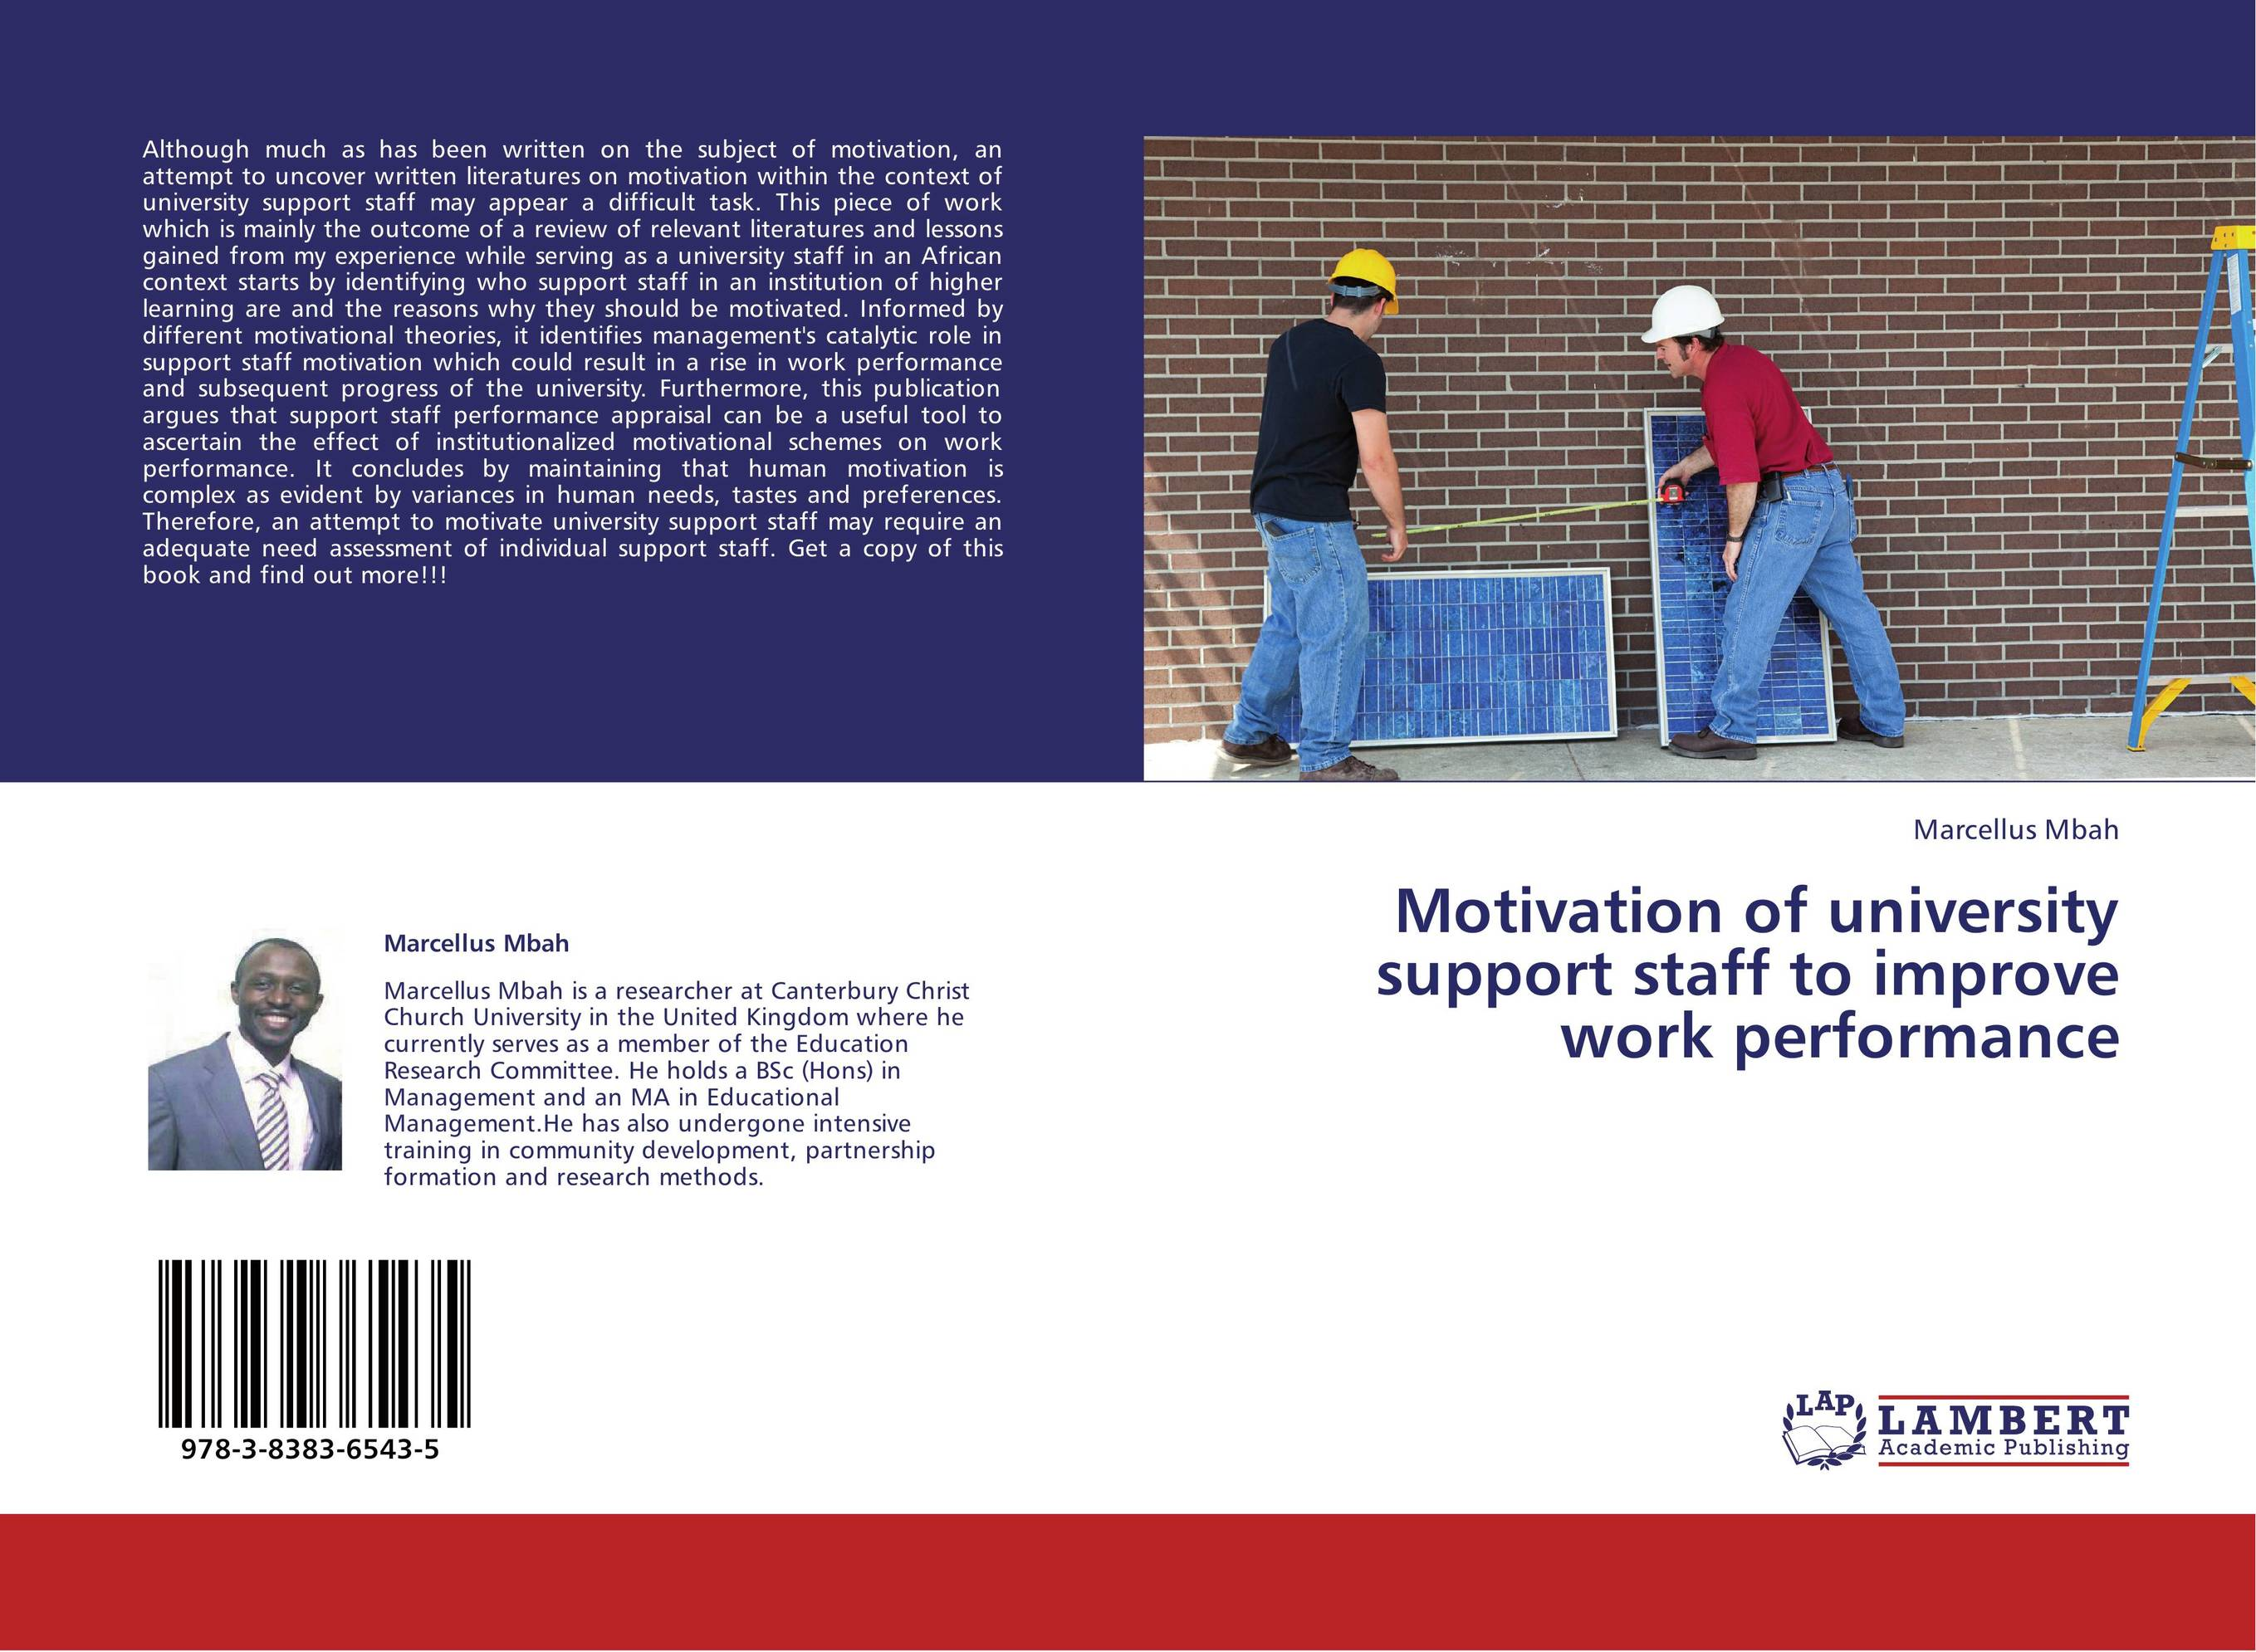 improving work performance and motivation through job design management essay Hence,job design aims to improve the performance and motivation of employee in an organizationanalysis of job design begins with proper viewing at job with broad perspective and moves towards identifying specific activities required to do the job with.